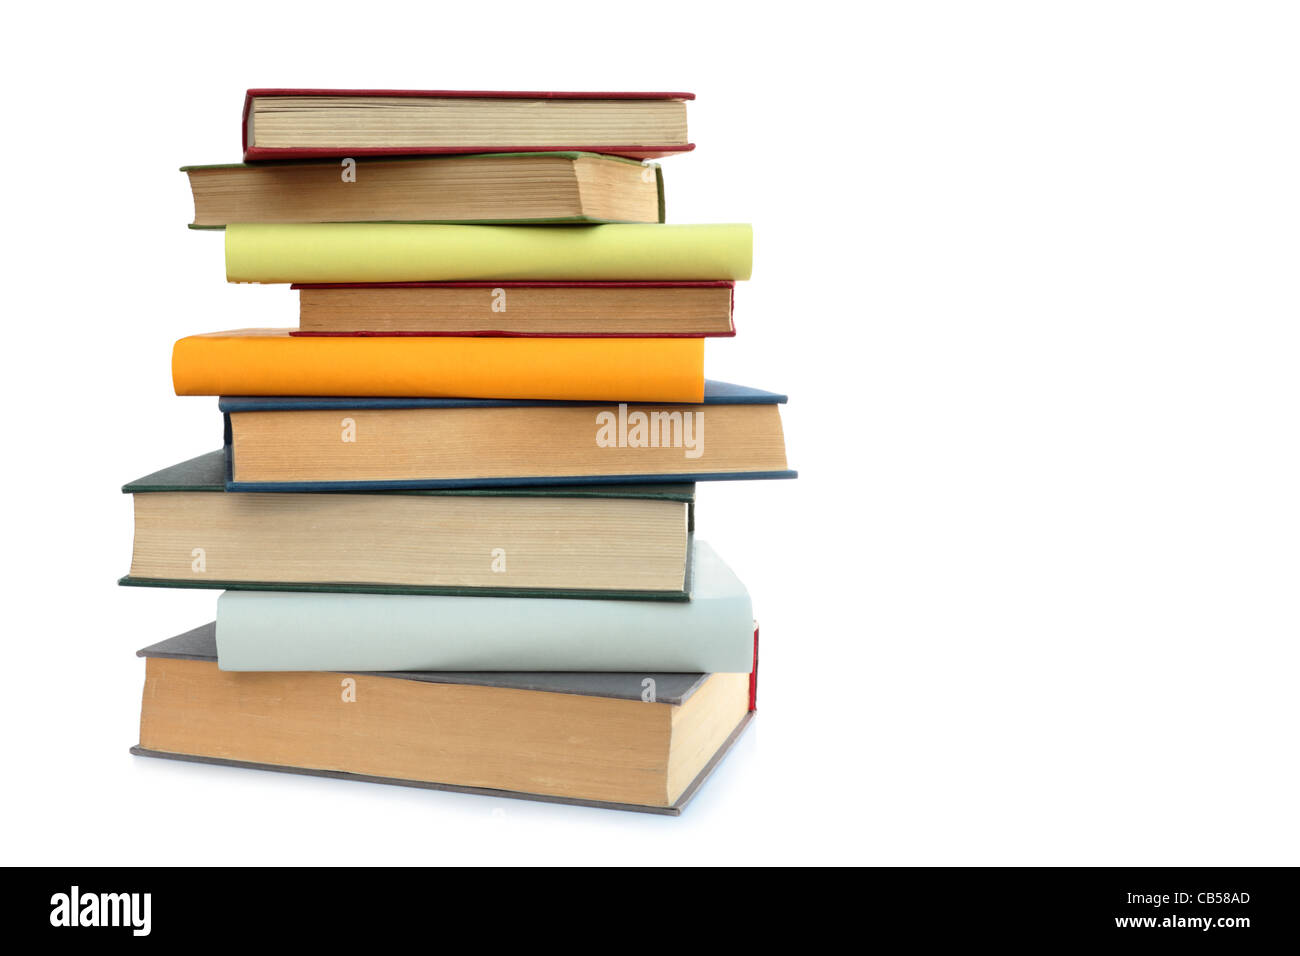 stacked books on a white background stock photo 41298277 alamy